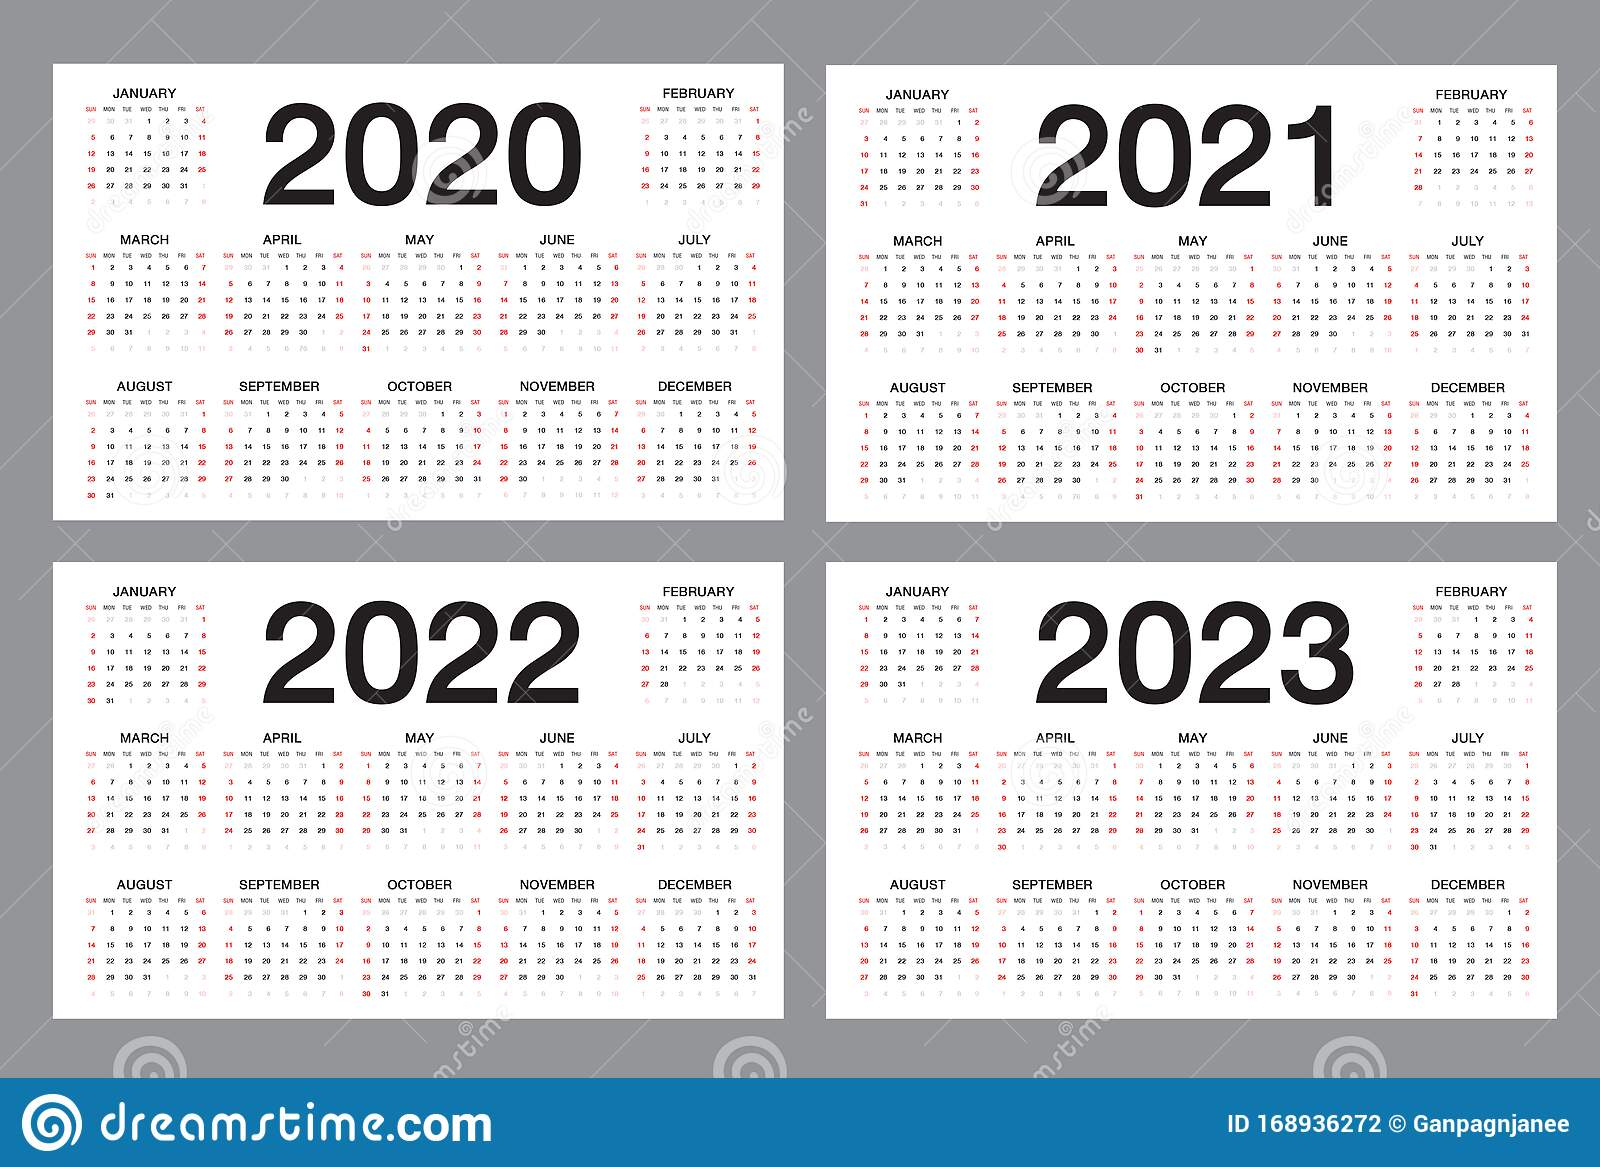 Simple Calendar Template For 2020, 2021, 2022, 2023 Years throughout 4 5 4 Retail Calendar 2022 2023